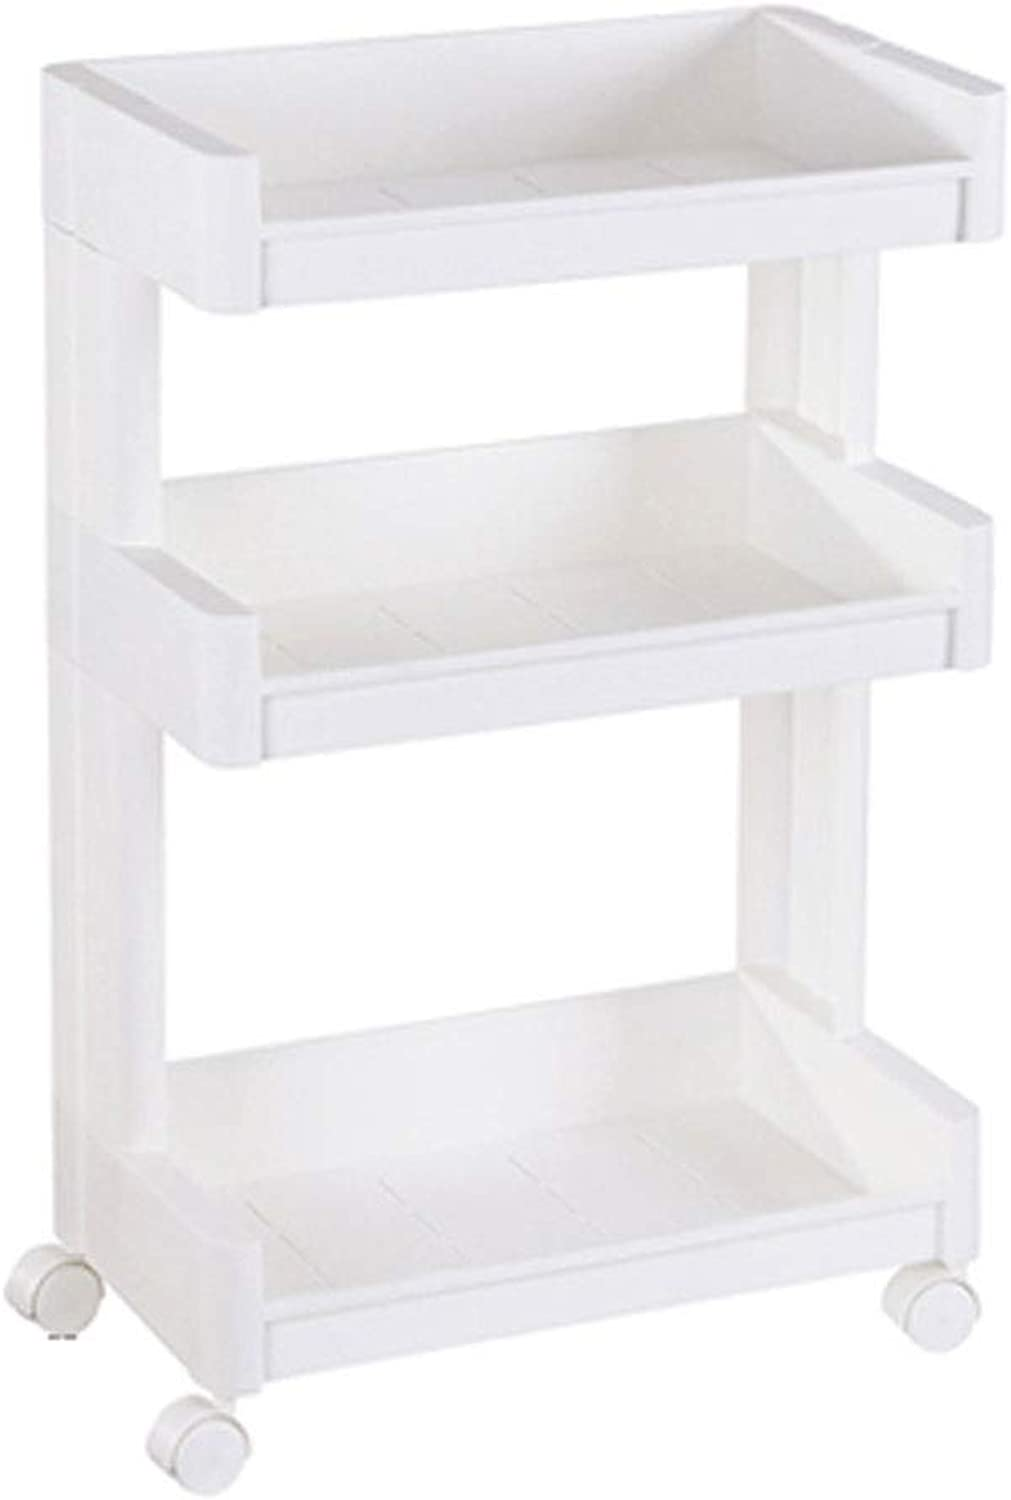 JUCAIYUAN Bathroom Shelf Rust-Proof White Shelf Bathroom Kitchen Two-Story Three-Story Bedroom (with Wheel) (Design   Three Floors, Size   45cmX46.8cmX26cm)